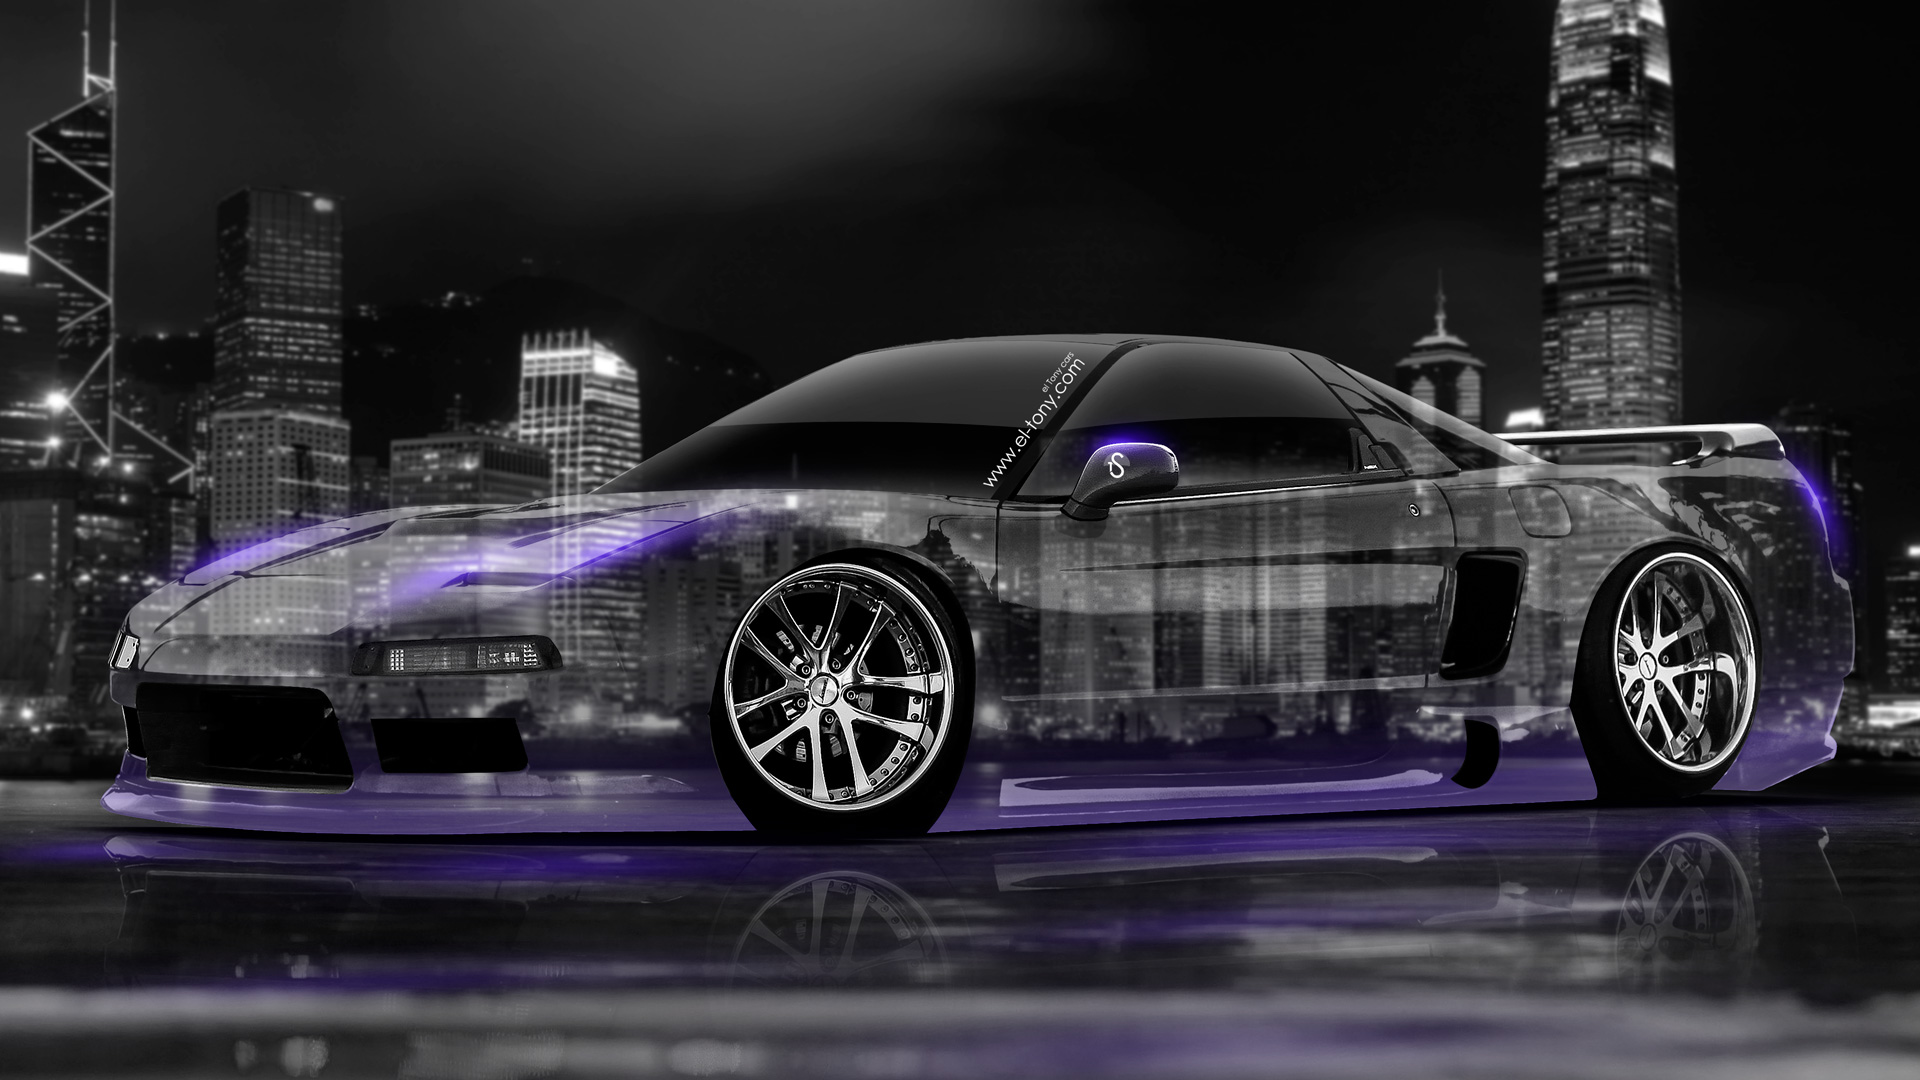 Superbe Honda NSX JDM Crystal City Car 2014 Violet .